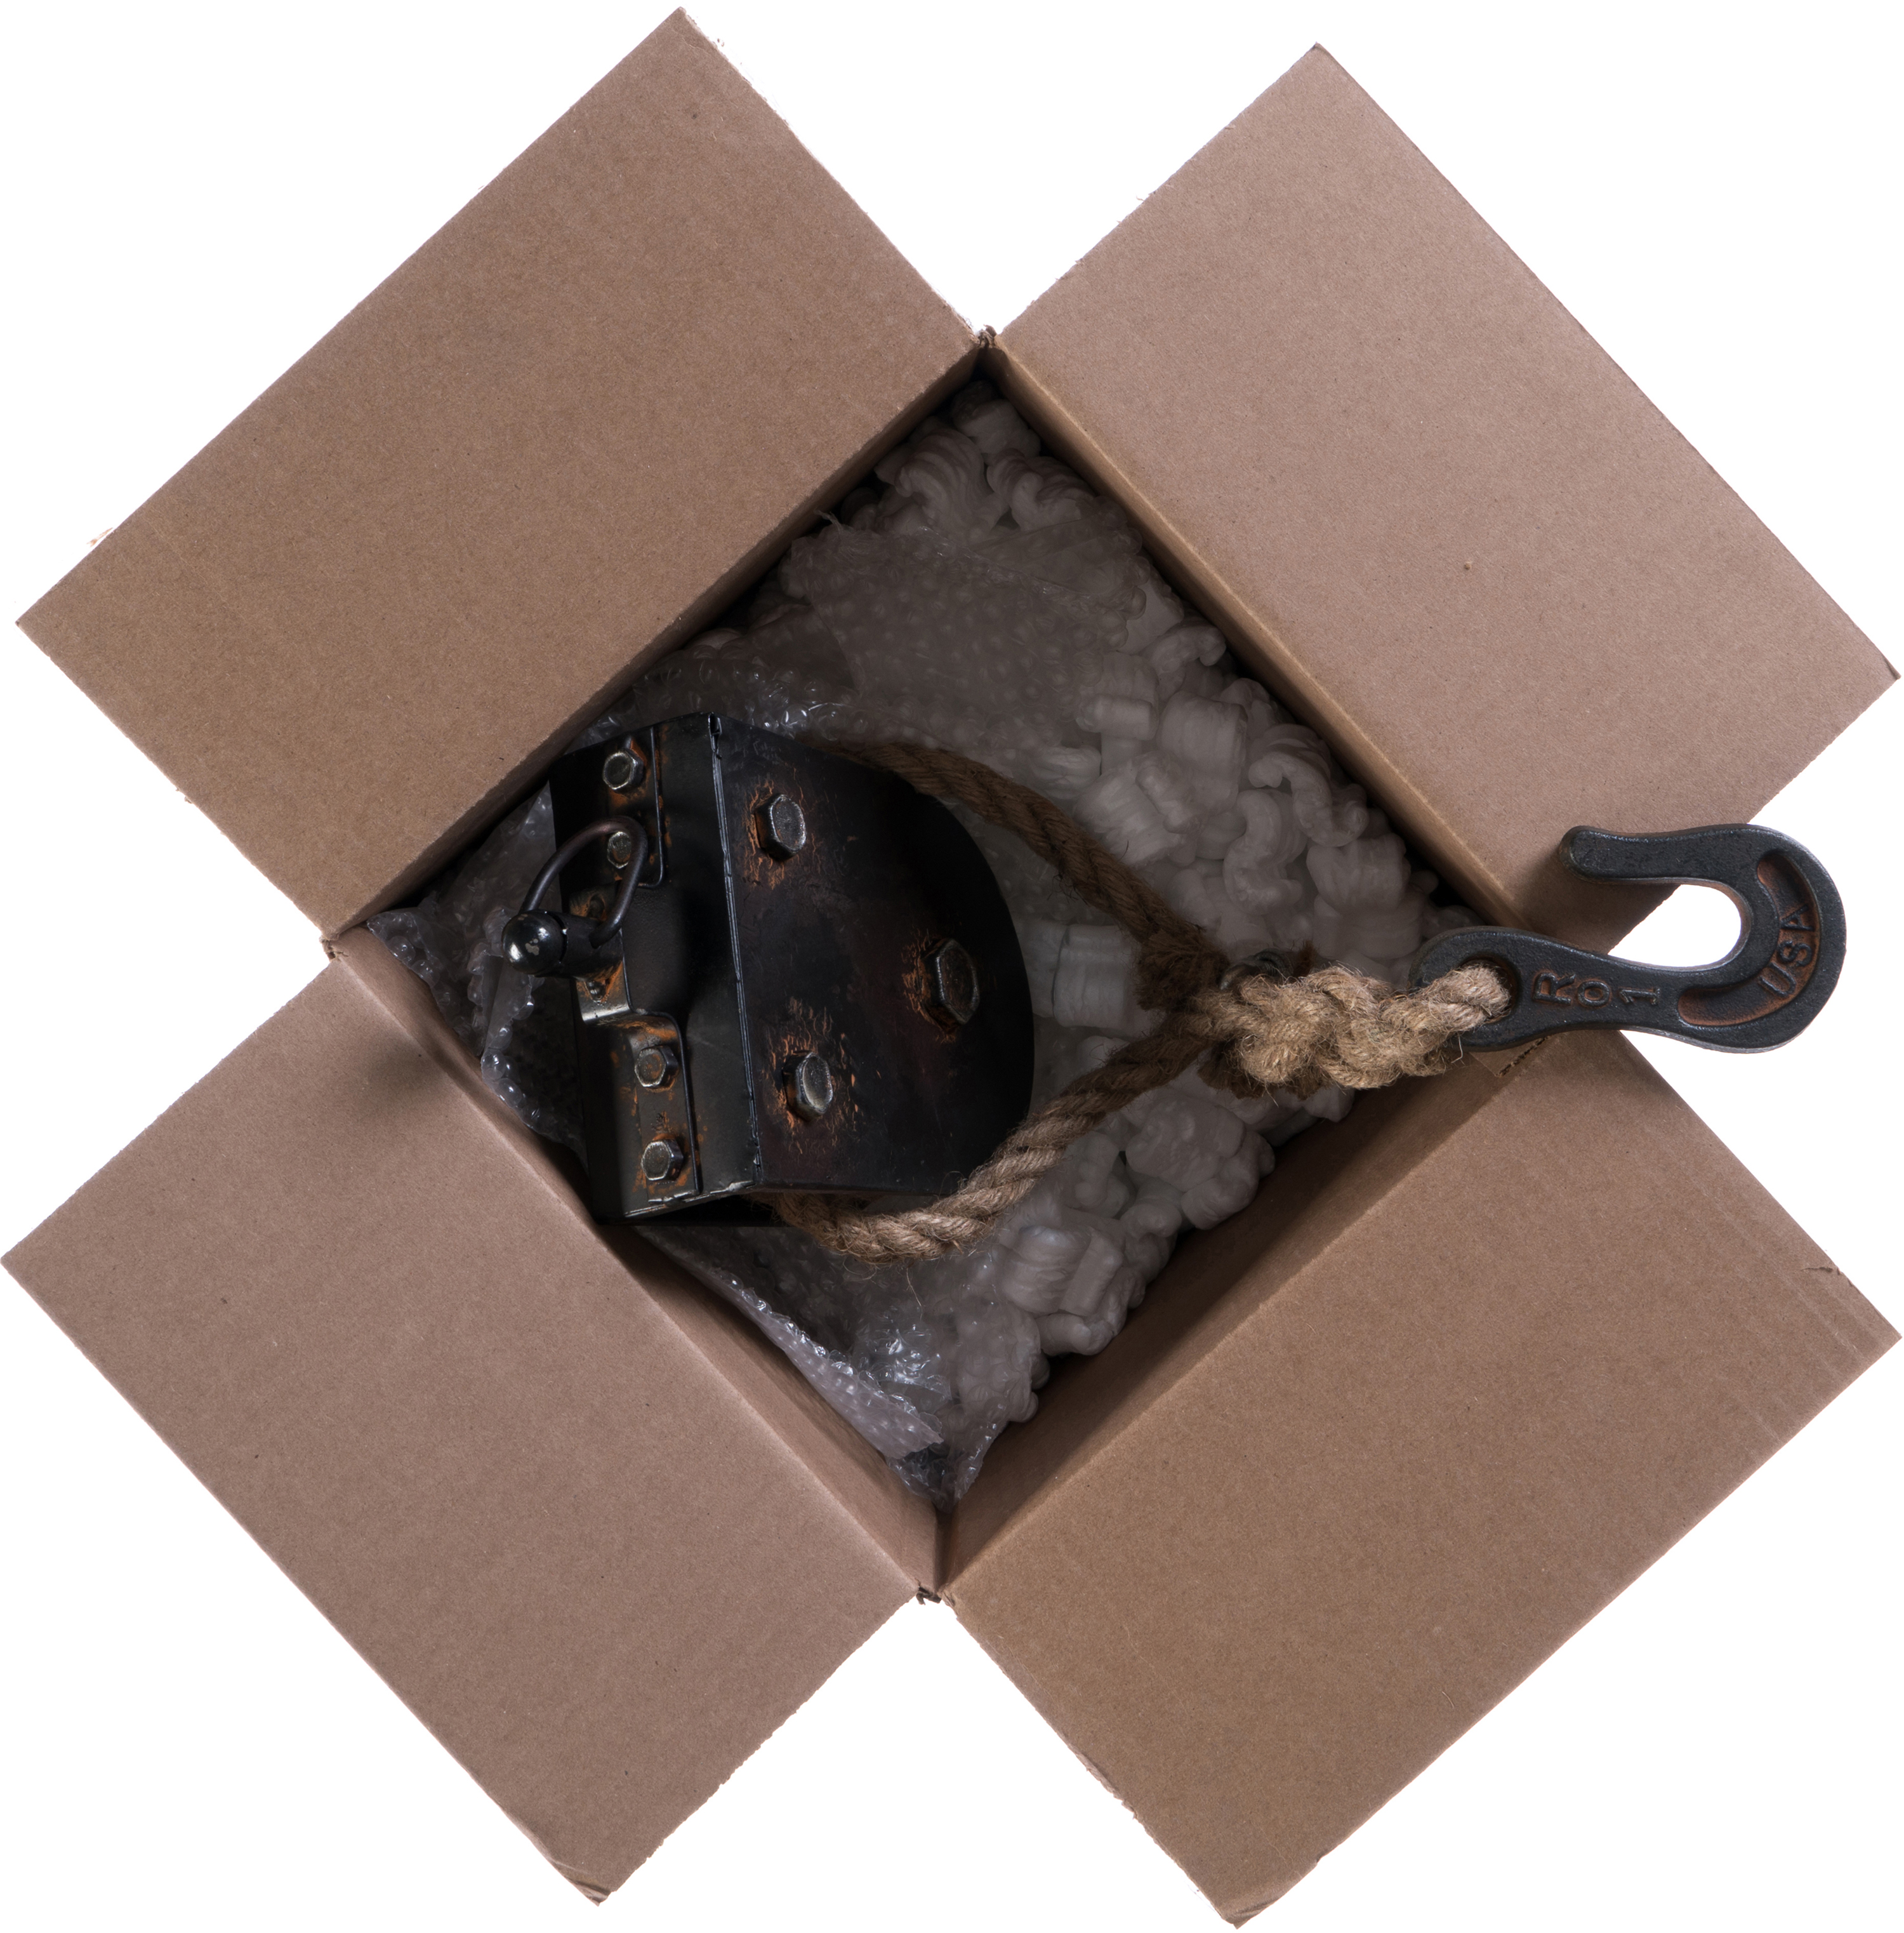 Shipping box with a pulley in it